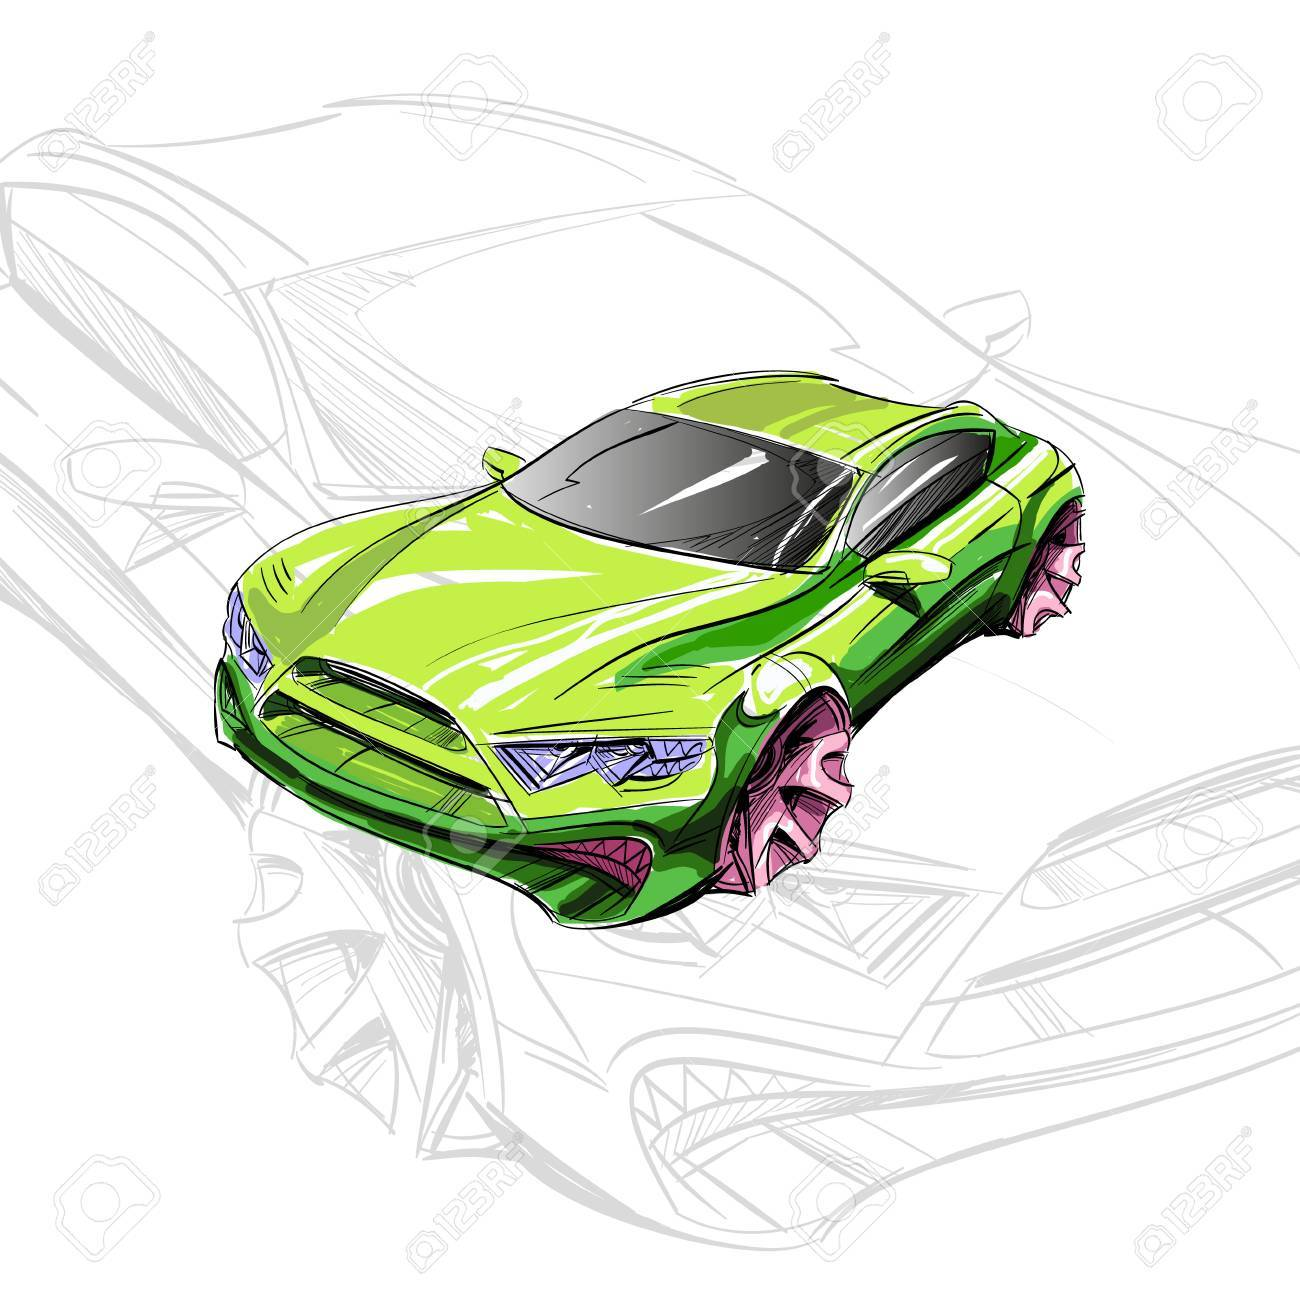 Car Concept. Car Sketch. Vector Hand Drawn. Autodesign. Automobile ...